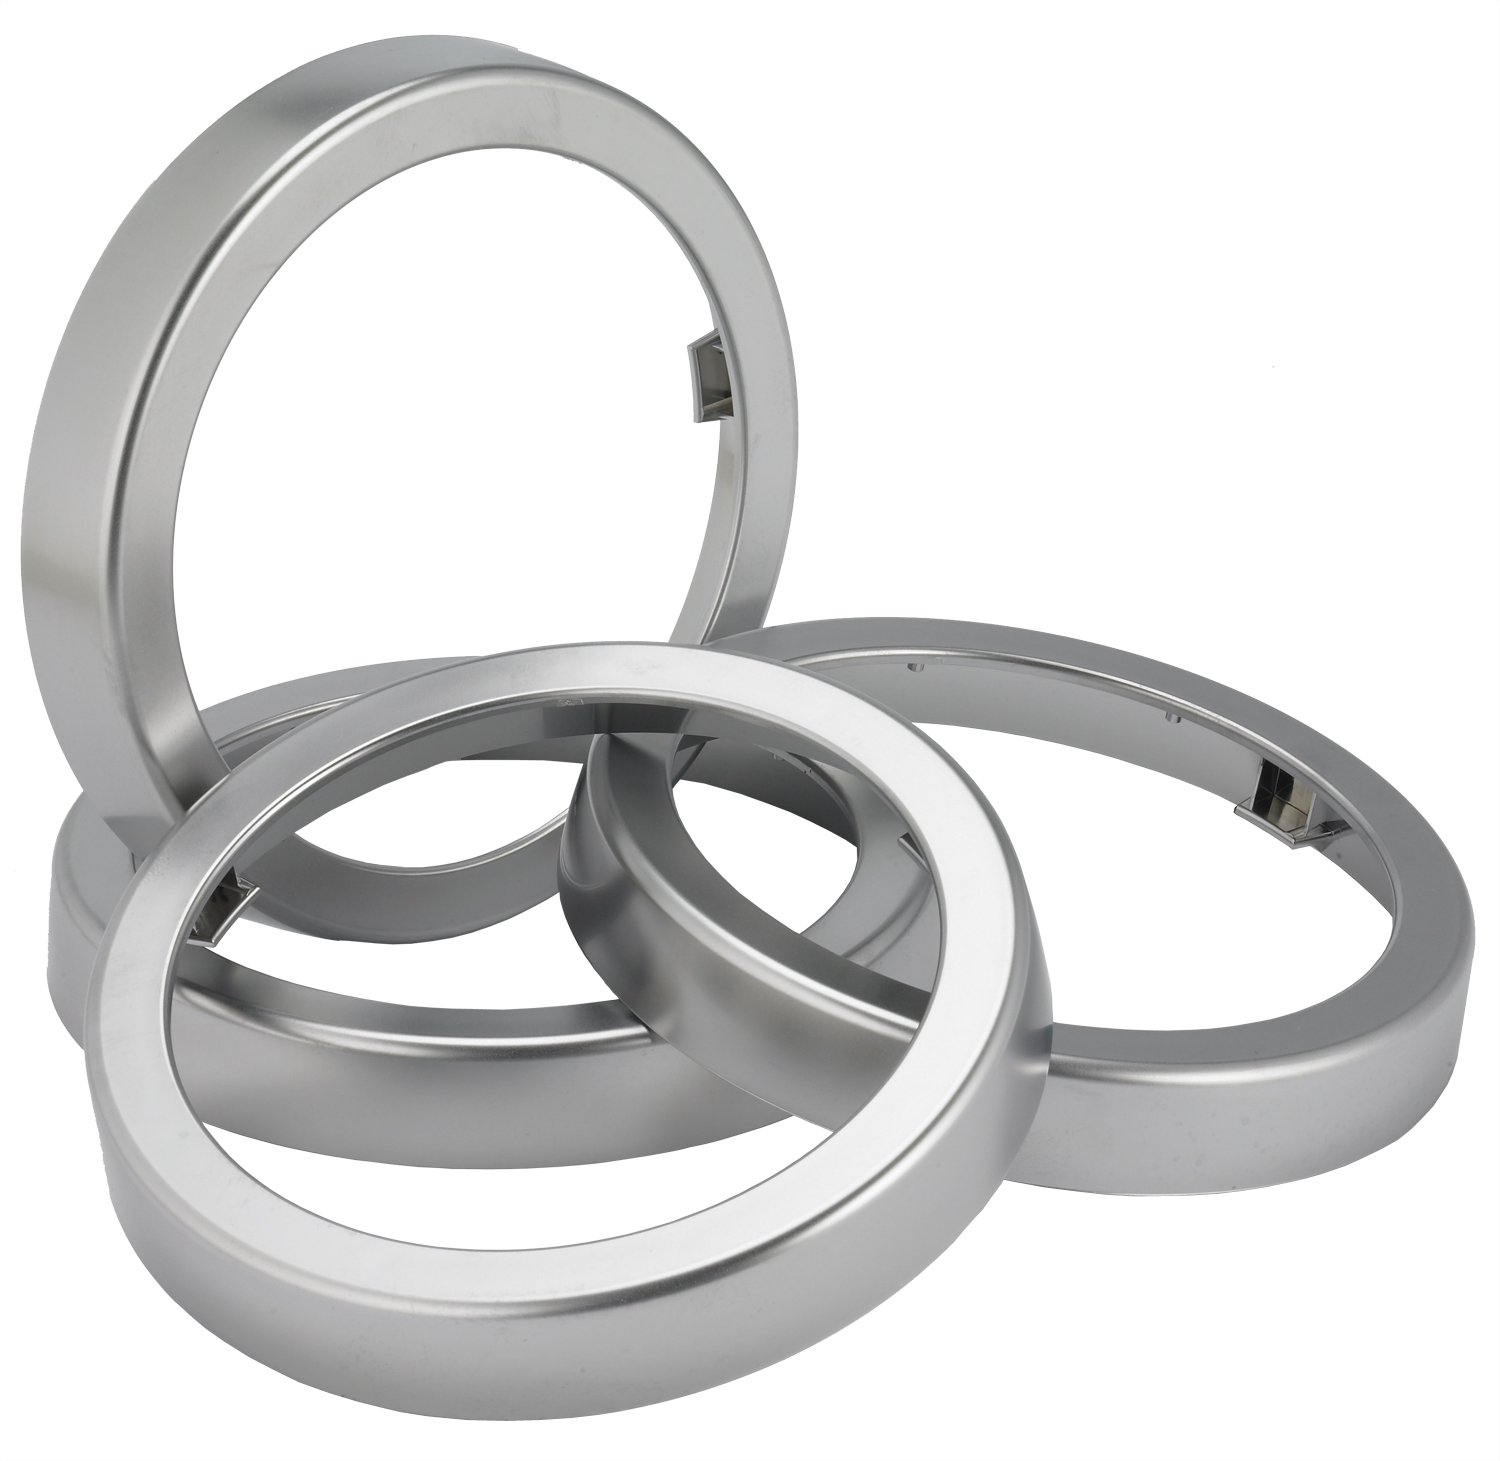 Cup-Dispenser-Metal-Rings